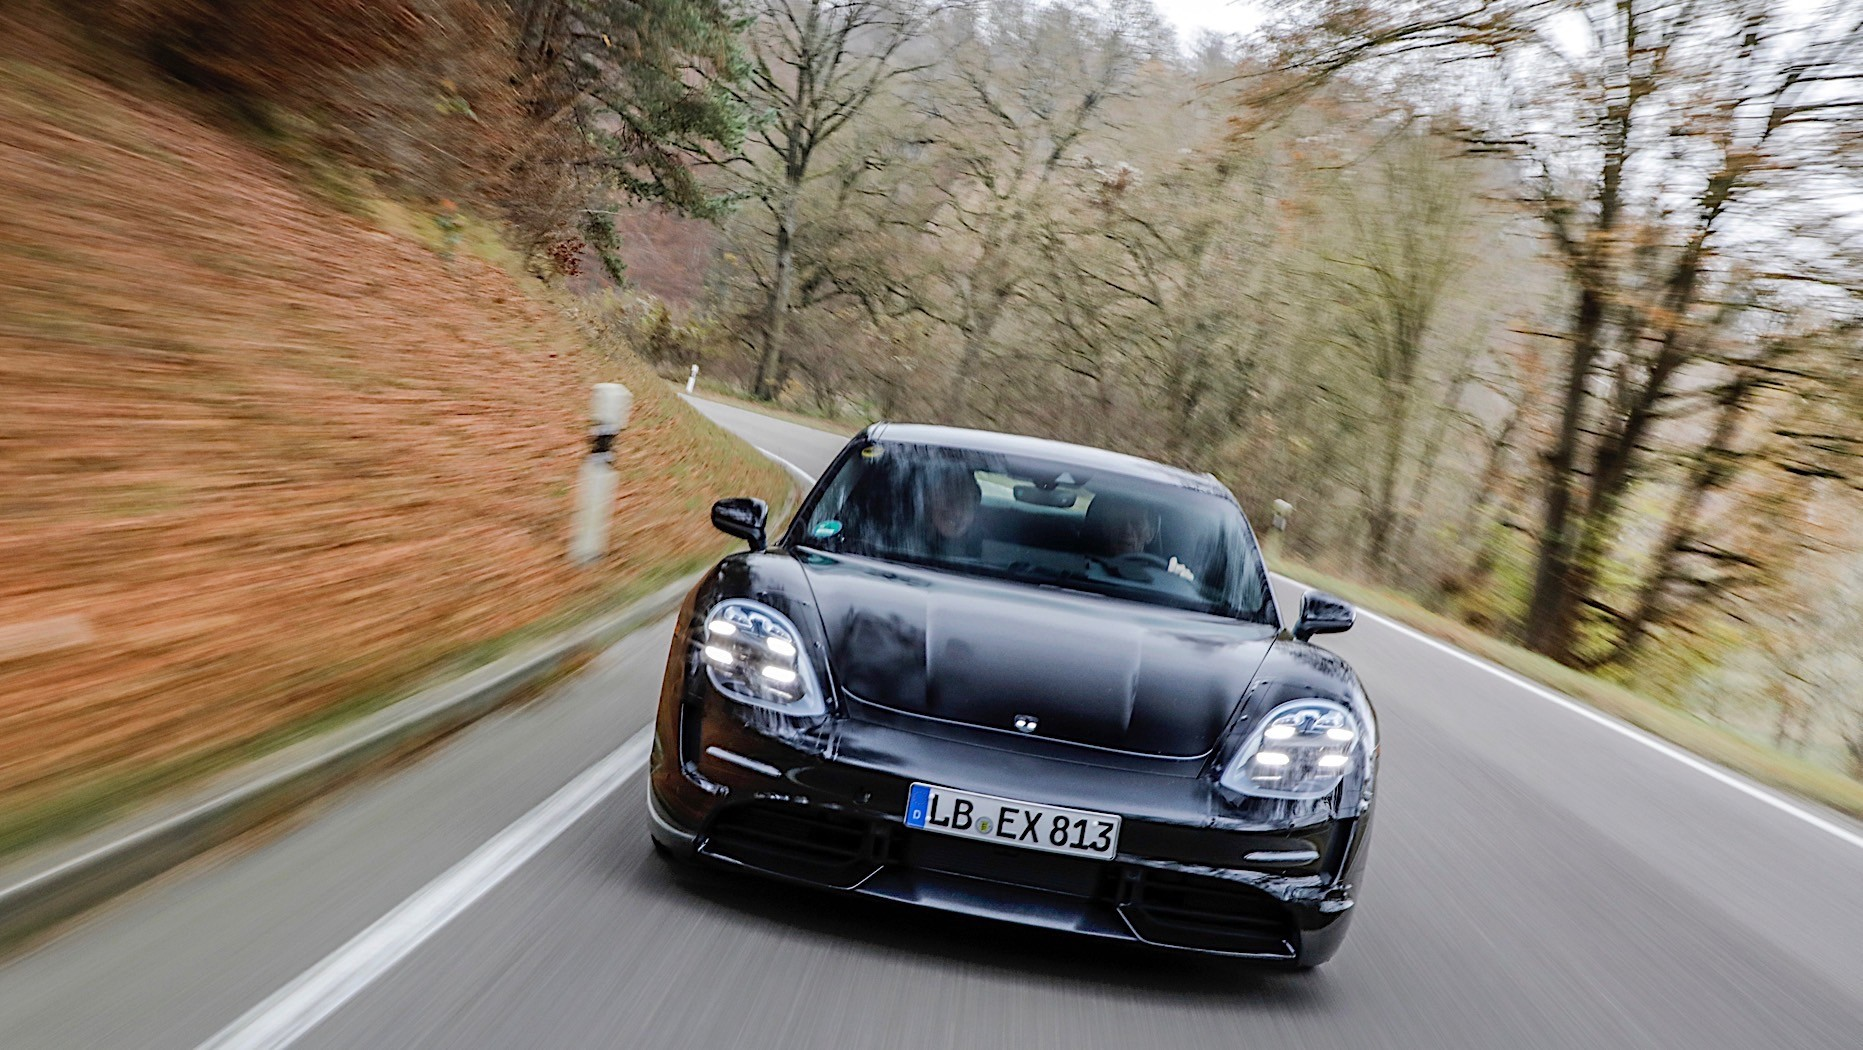 Porsche-Taycan-spy-photos-6